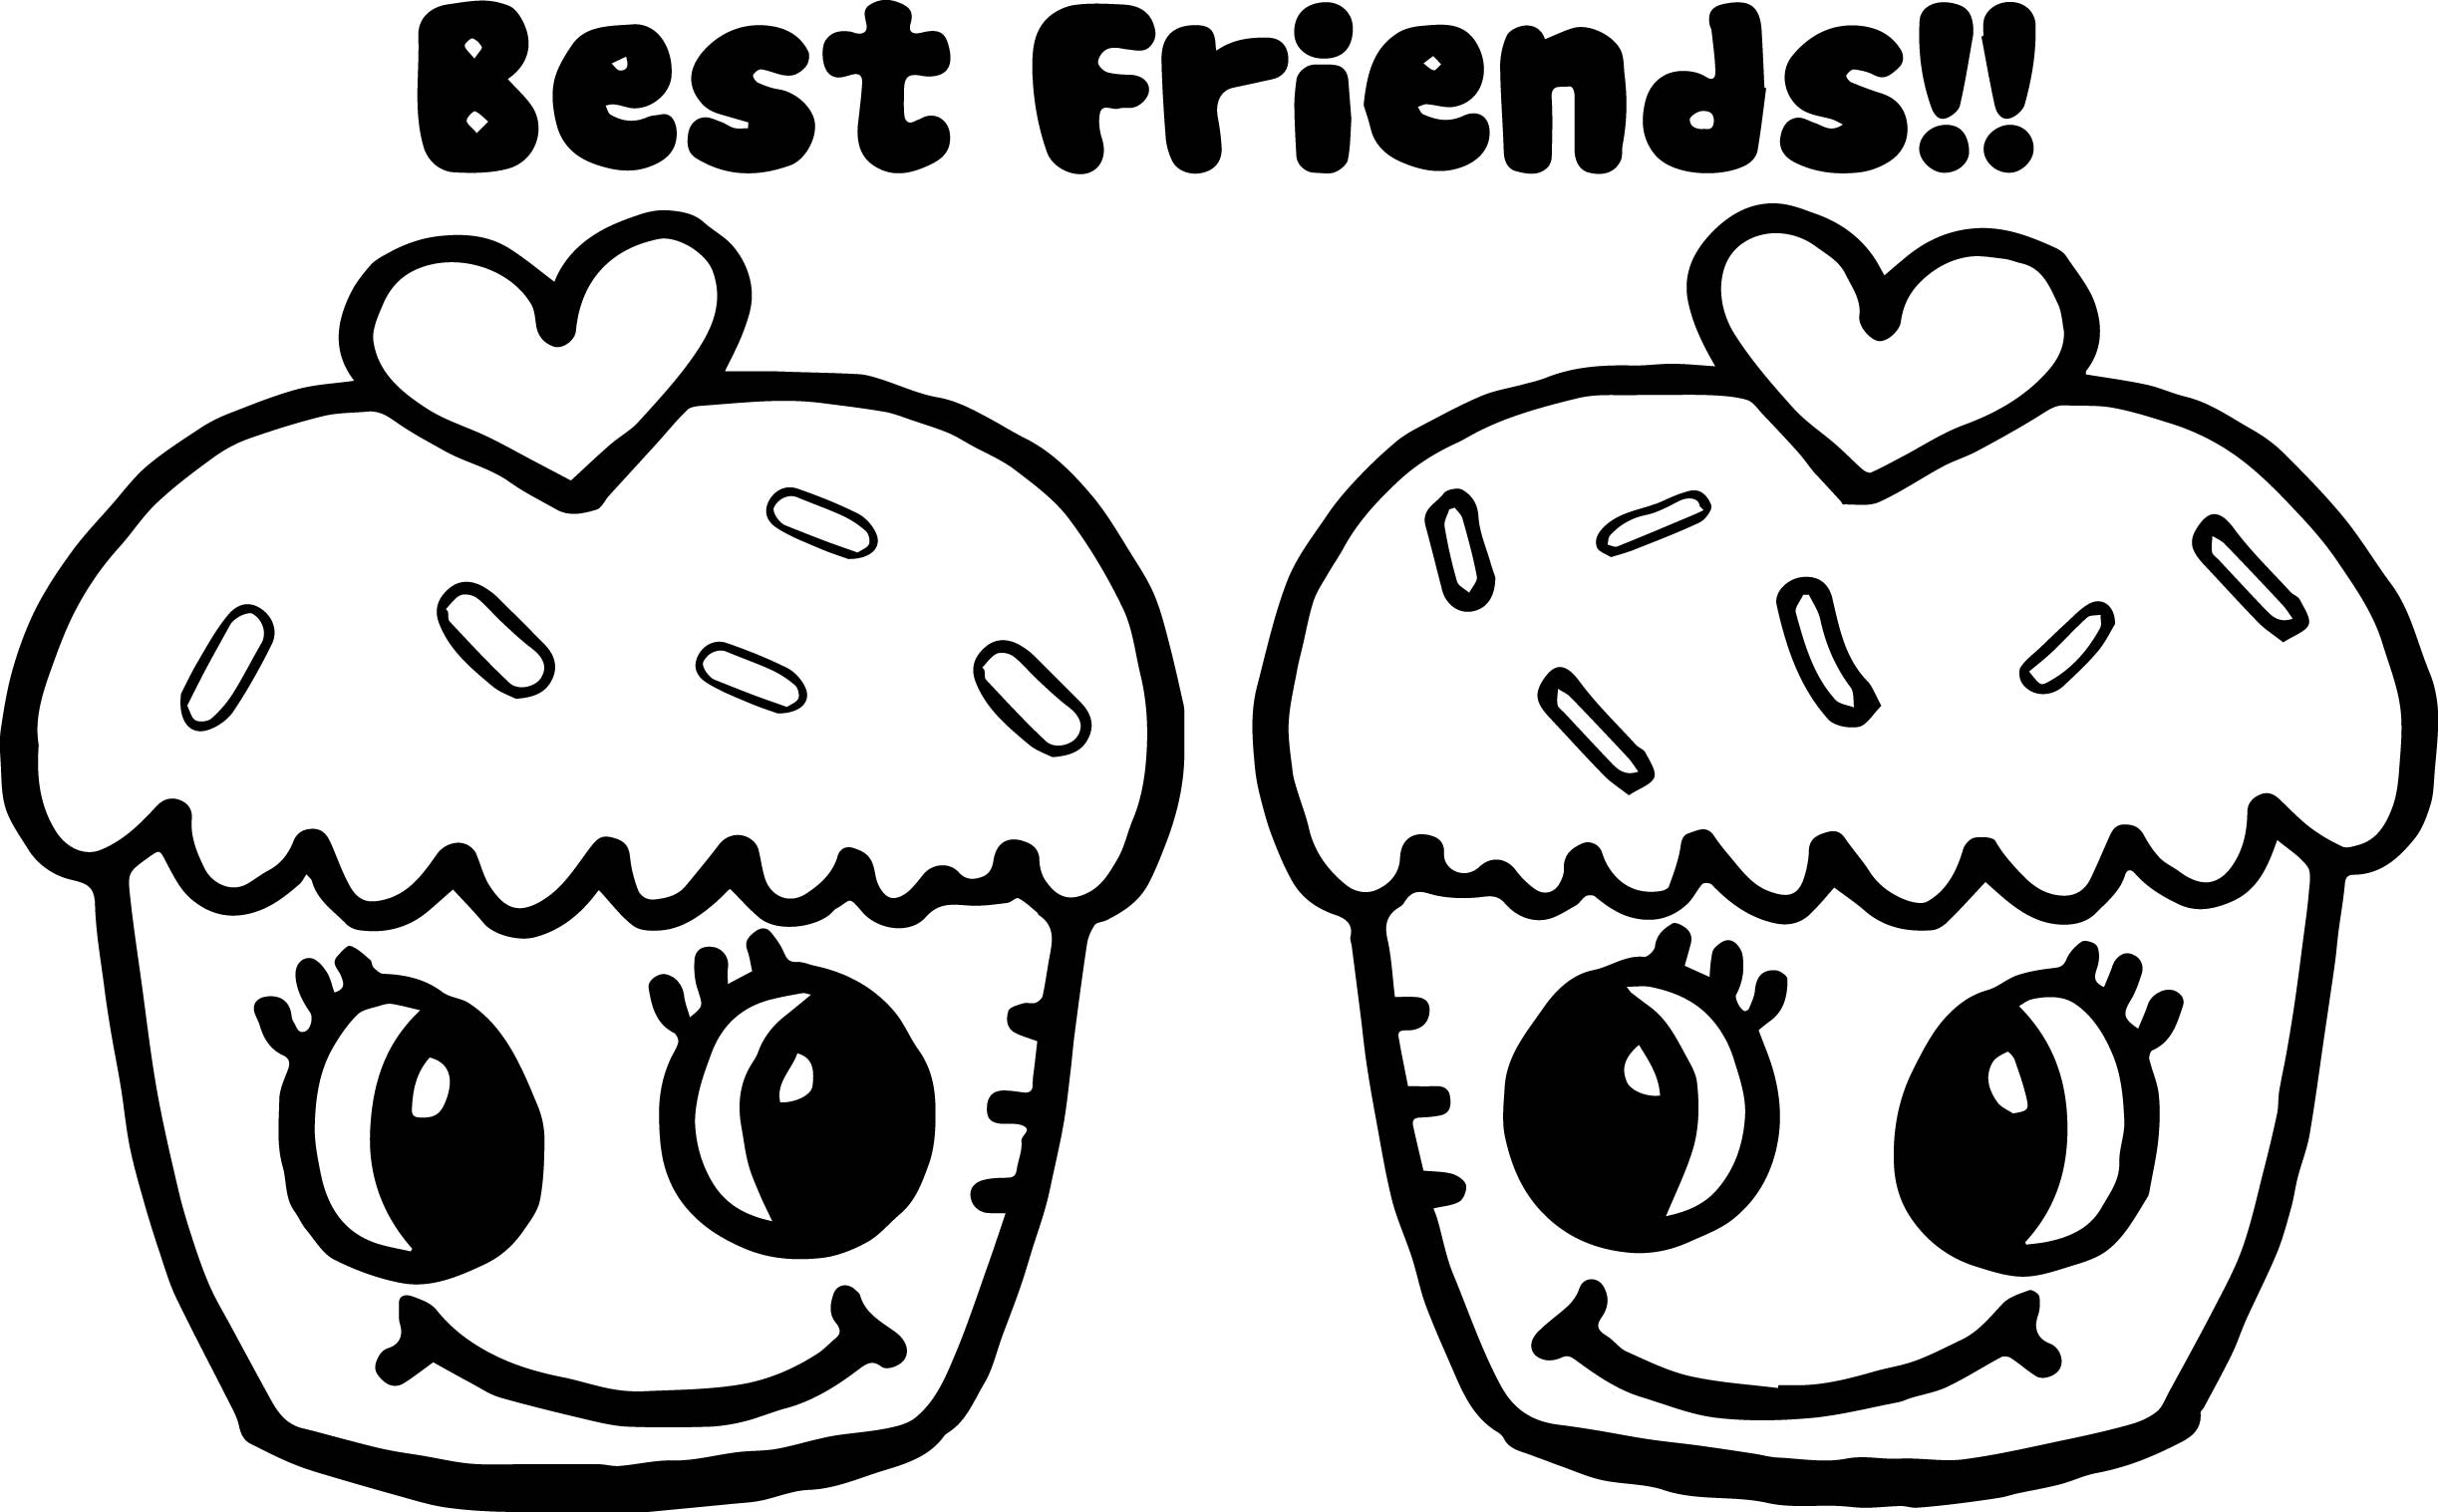 Cupcakes Best Friends Coloring Page Wecoloringpage